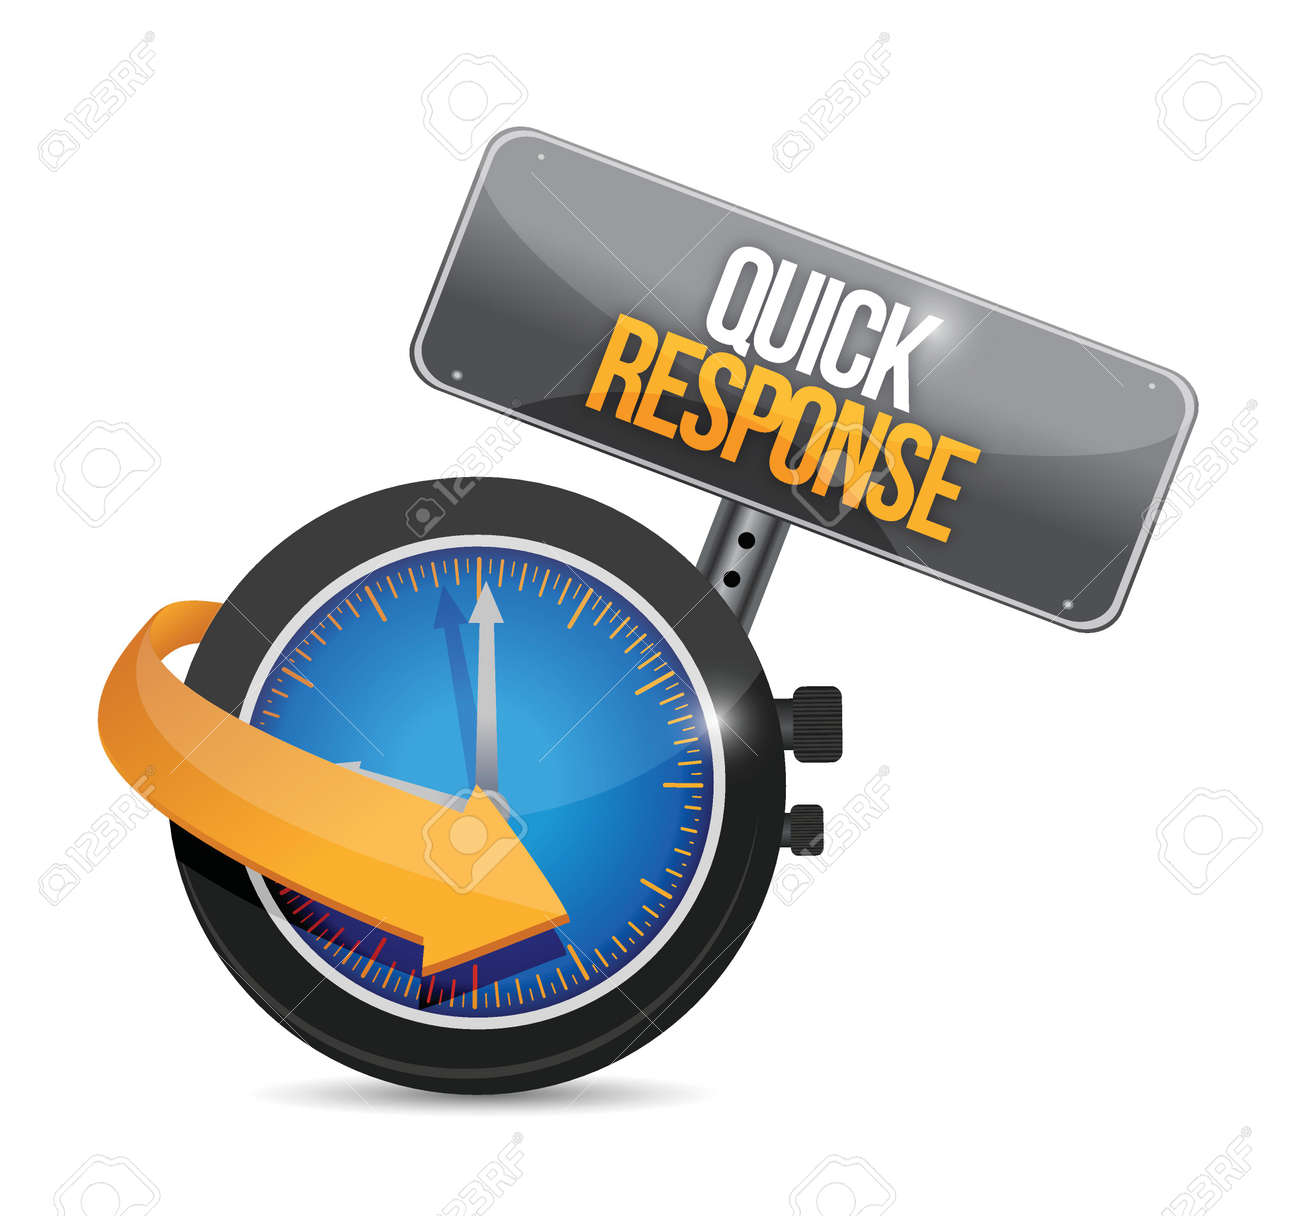 Quick Response Watch Sign Illustration Design Over A White ...